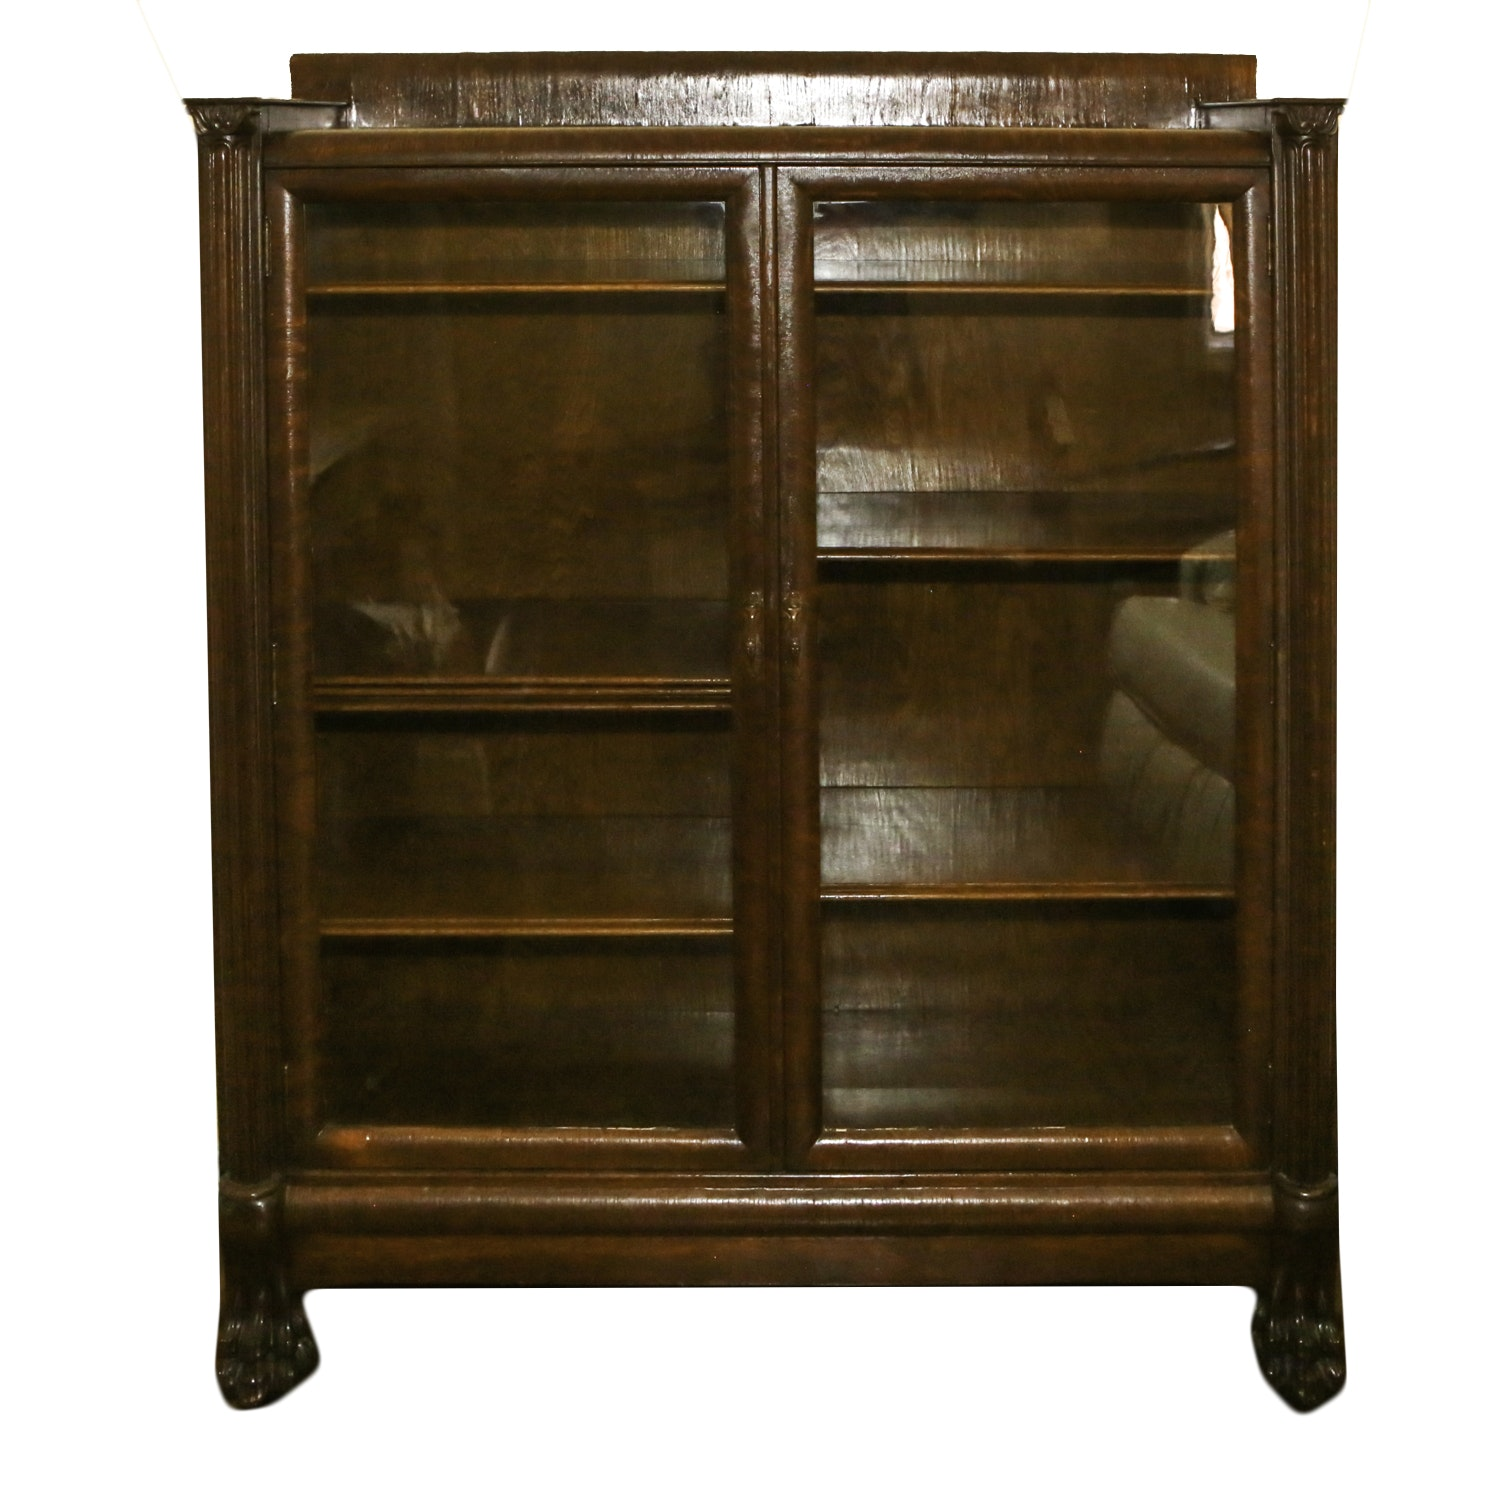 Antique Colonial Revival Style Display Cabinet